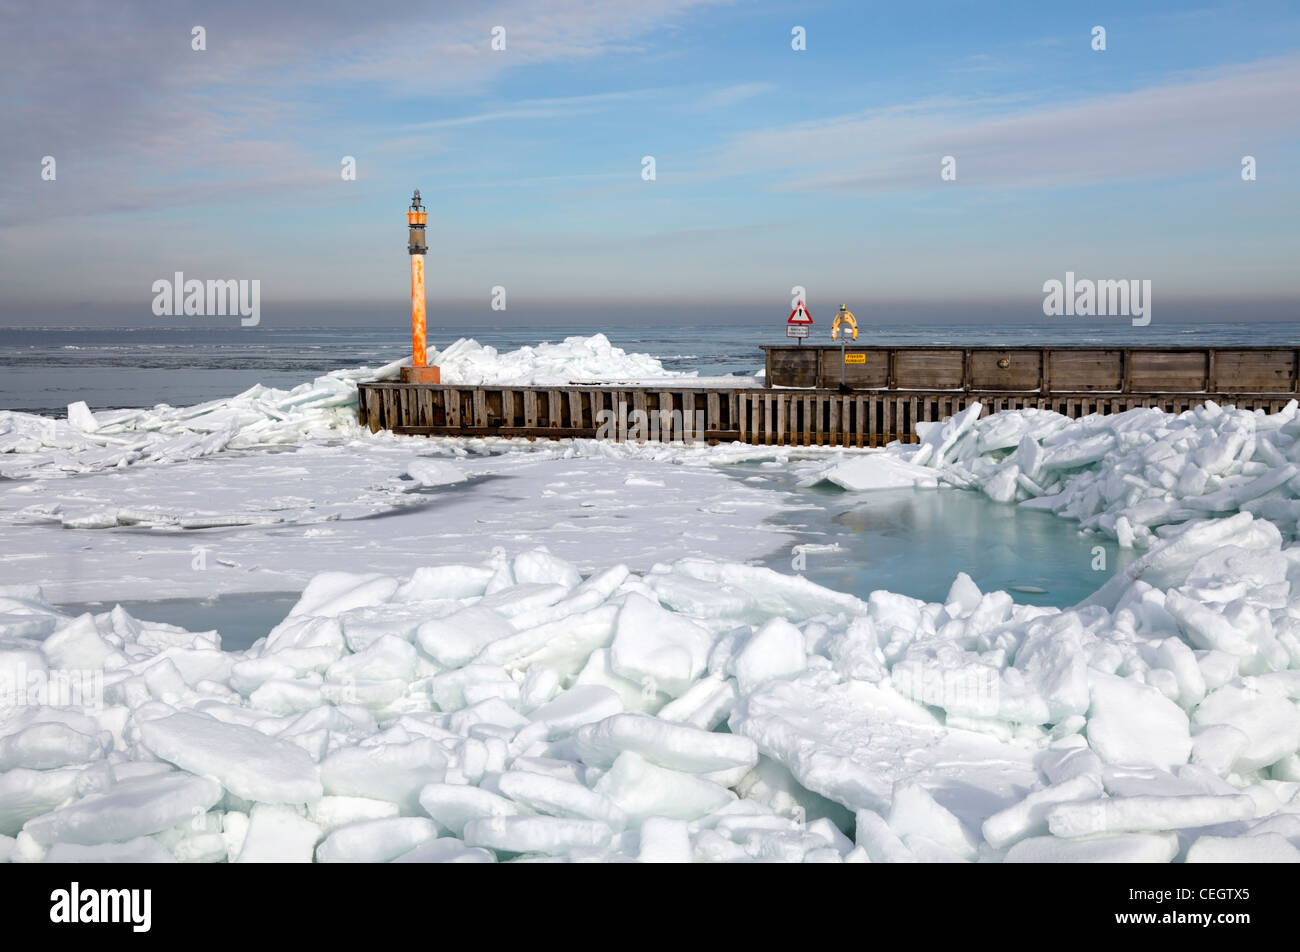 An extremely cold spell with hard frost and onshore wind has packed the ice in  the Øresund or Oresund sound - Stock Image